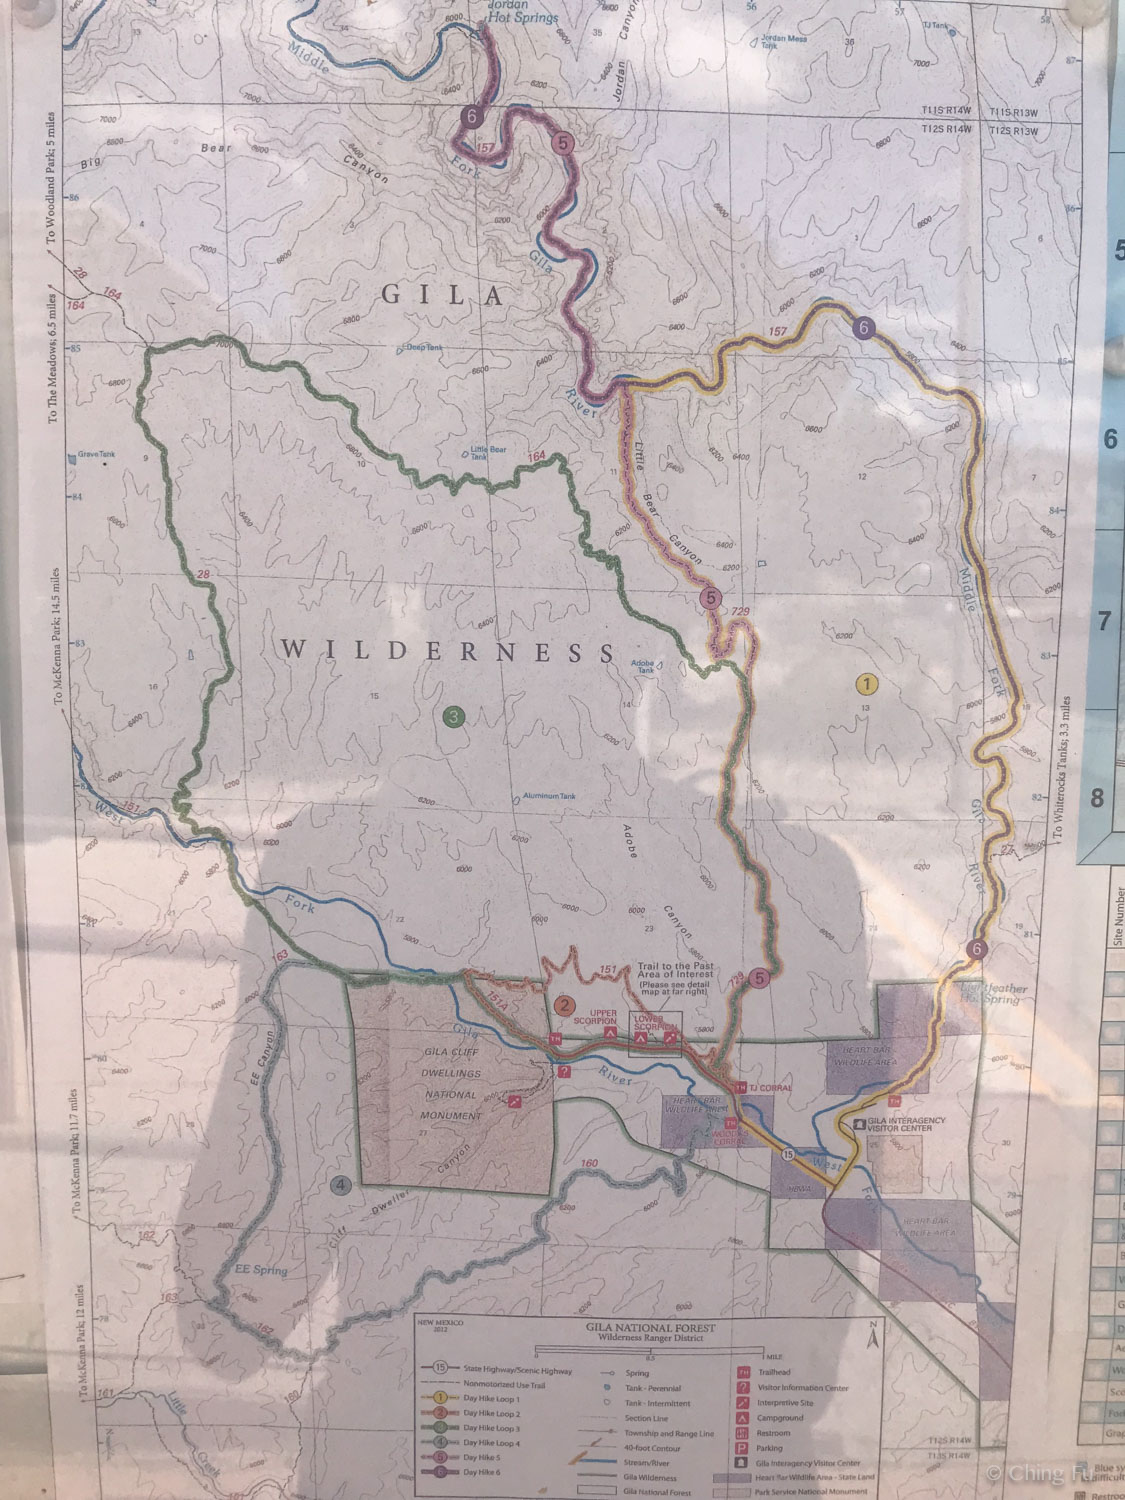 Map of hikes in Gila National Forest and Wilderness.